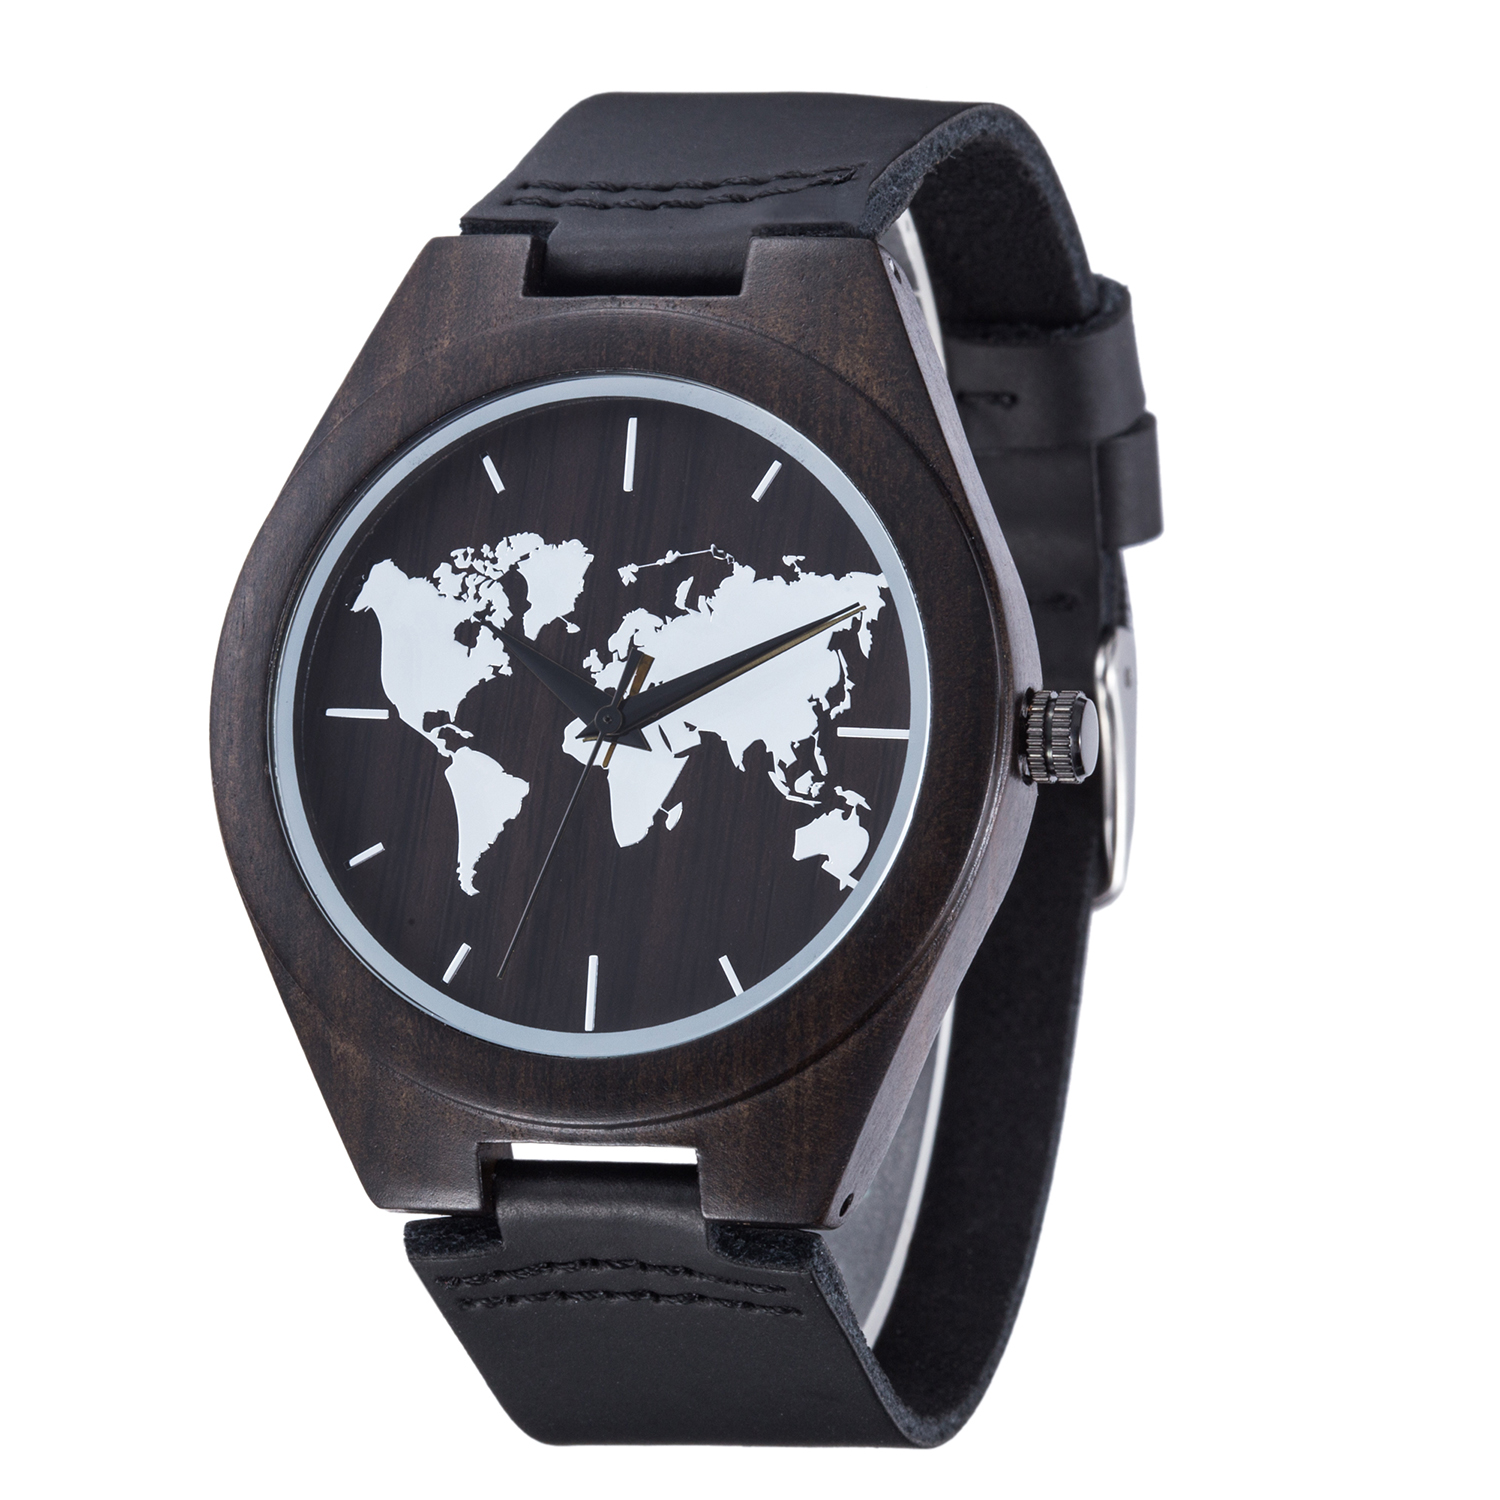 New Black Wooden World Map Mens Genuine Leather Quartz Watch Bamboo Wood Male Wristwatches Fashion with Gift Box Reloj de Madera new world map mens genuine leather quartz watch wood bamboo male wrist watch luxury brand reloj de madera genuine with gift box